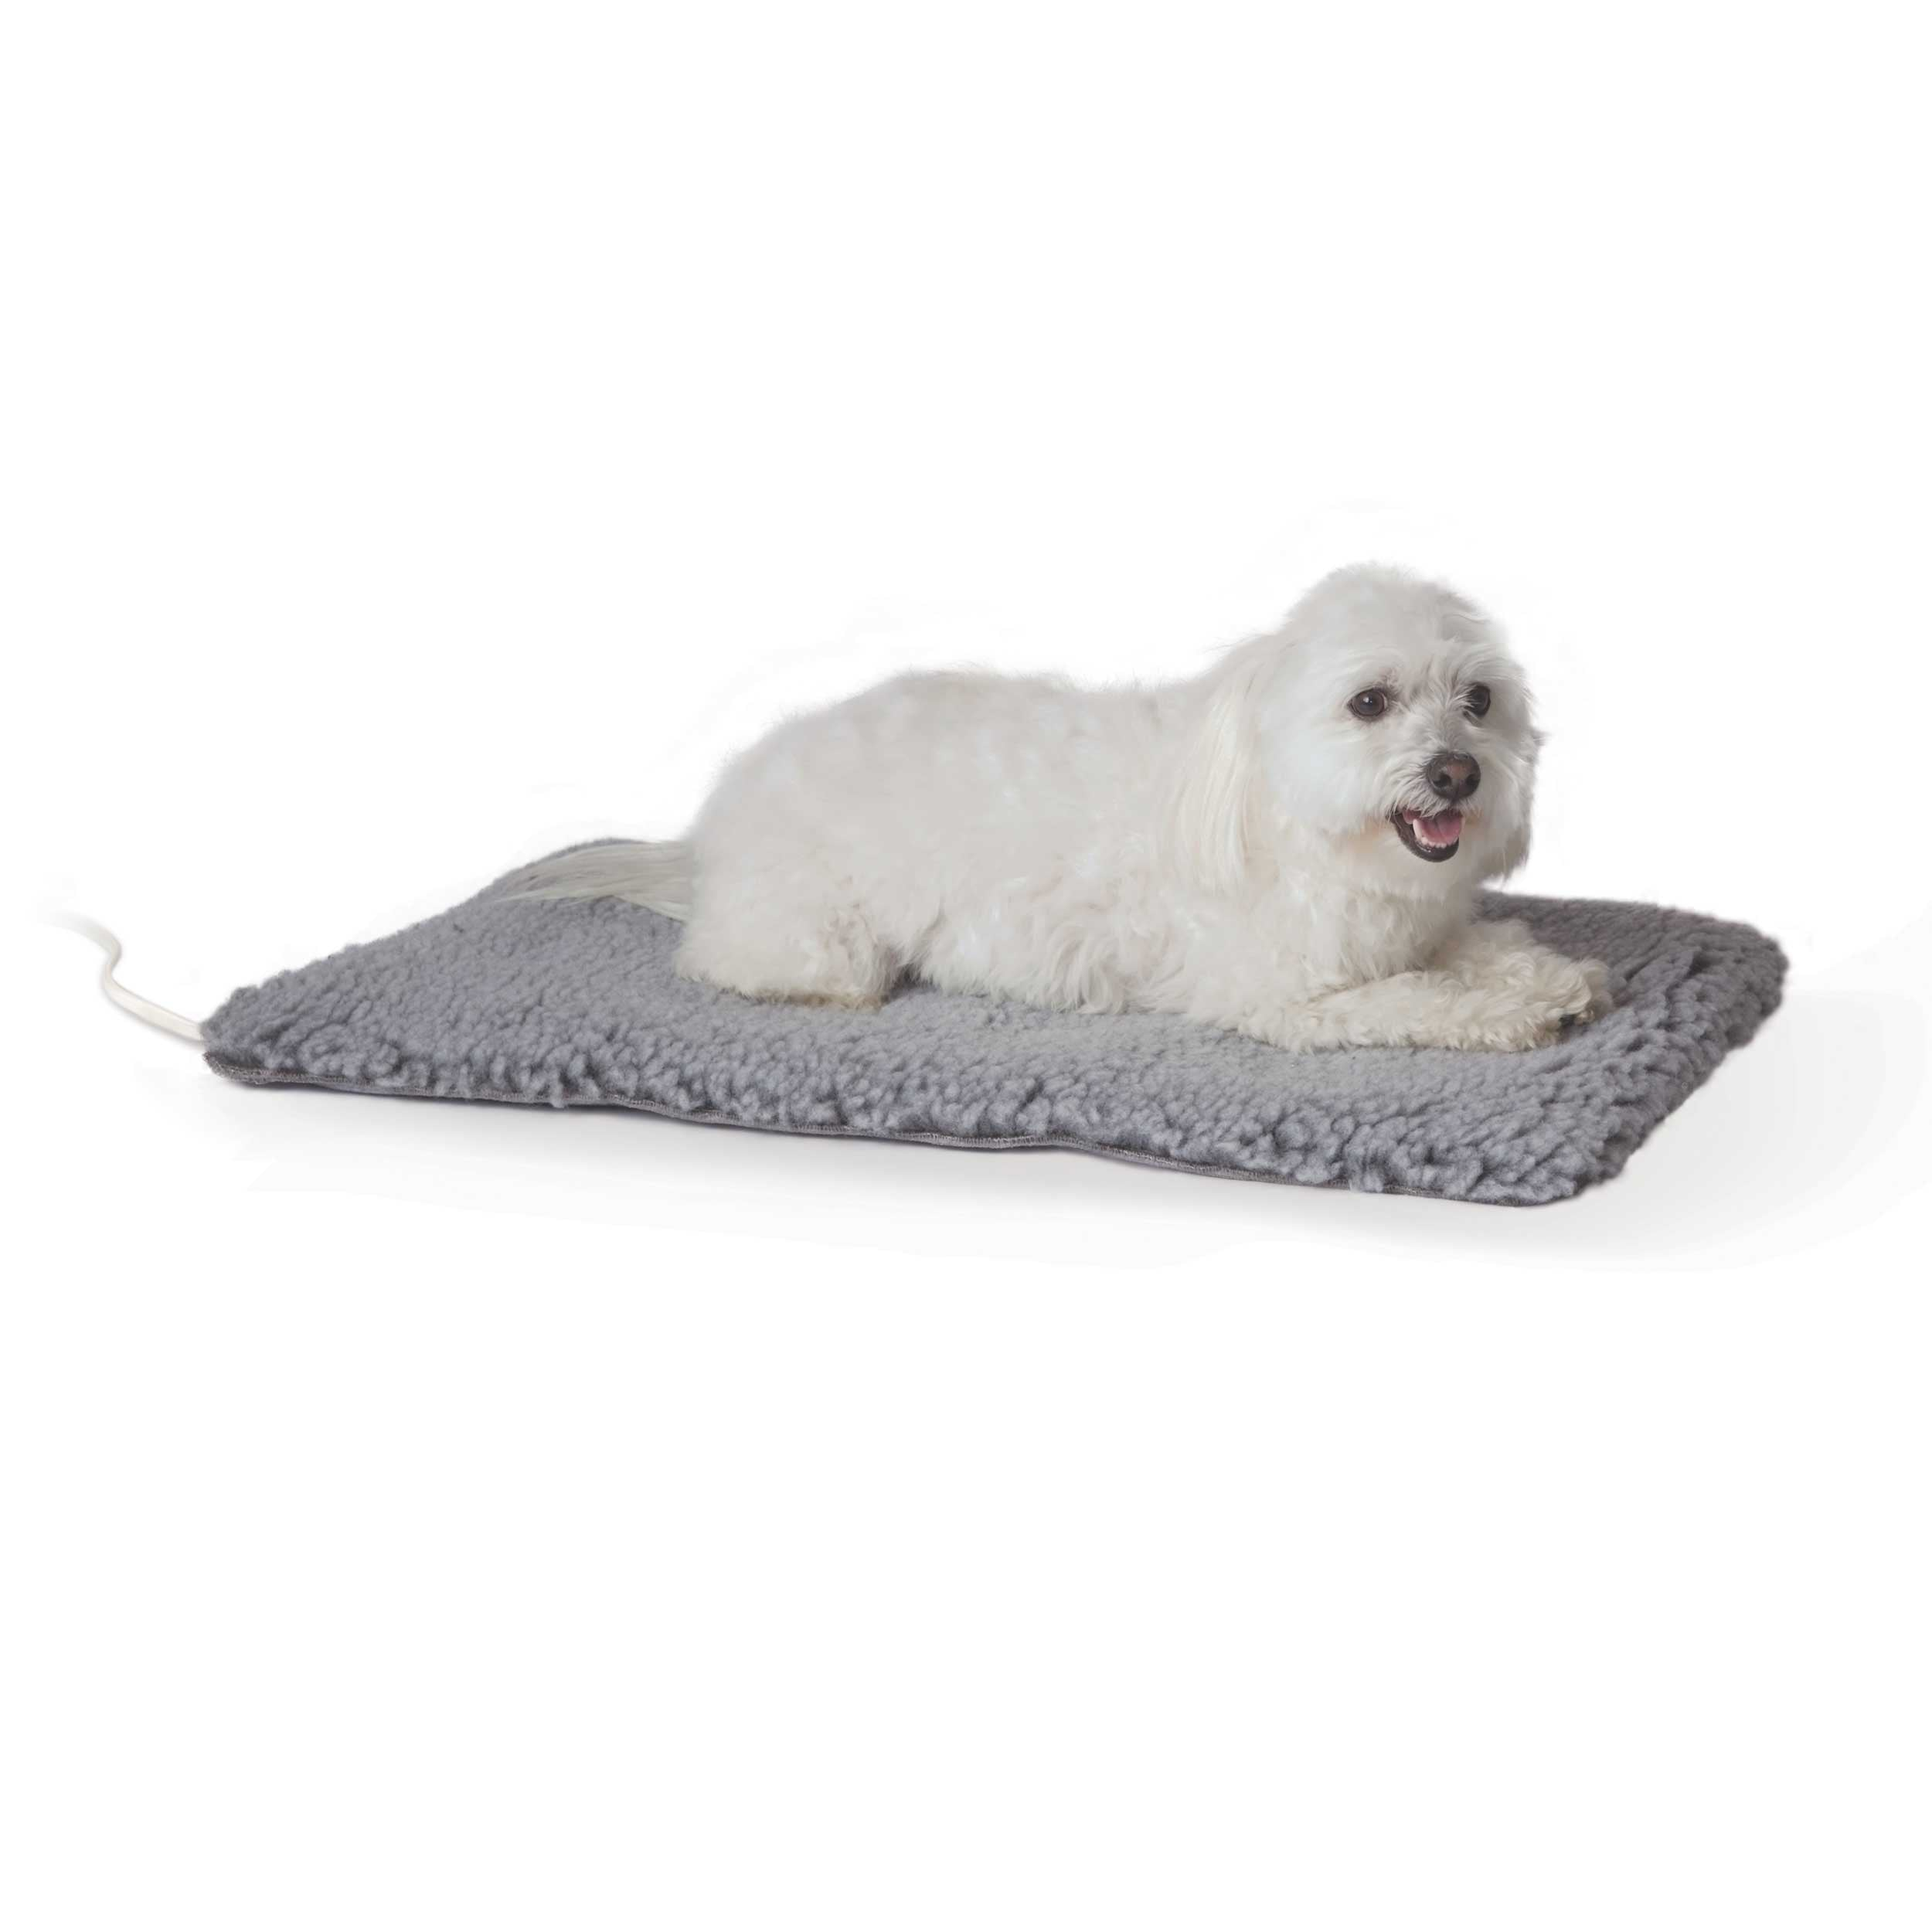 "K&H Pet Products Thermo-Plush Pet Pad Medium Gray 17.5"" x 28"" x 1"""